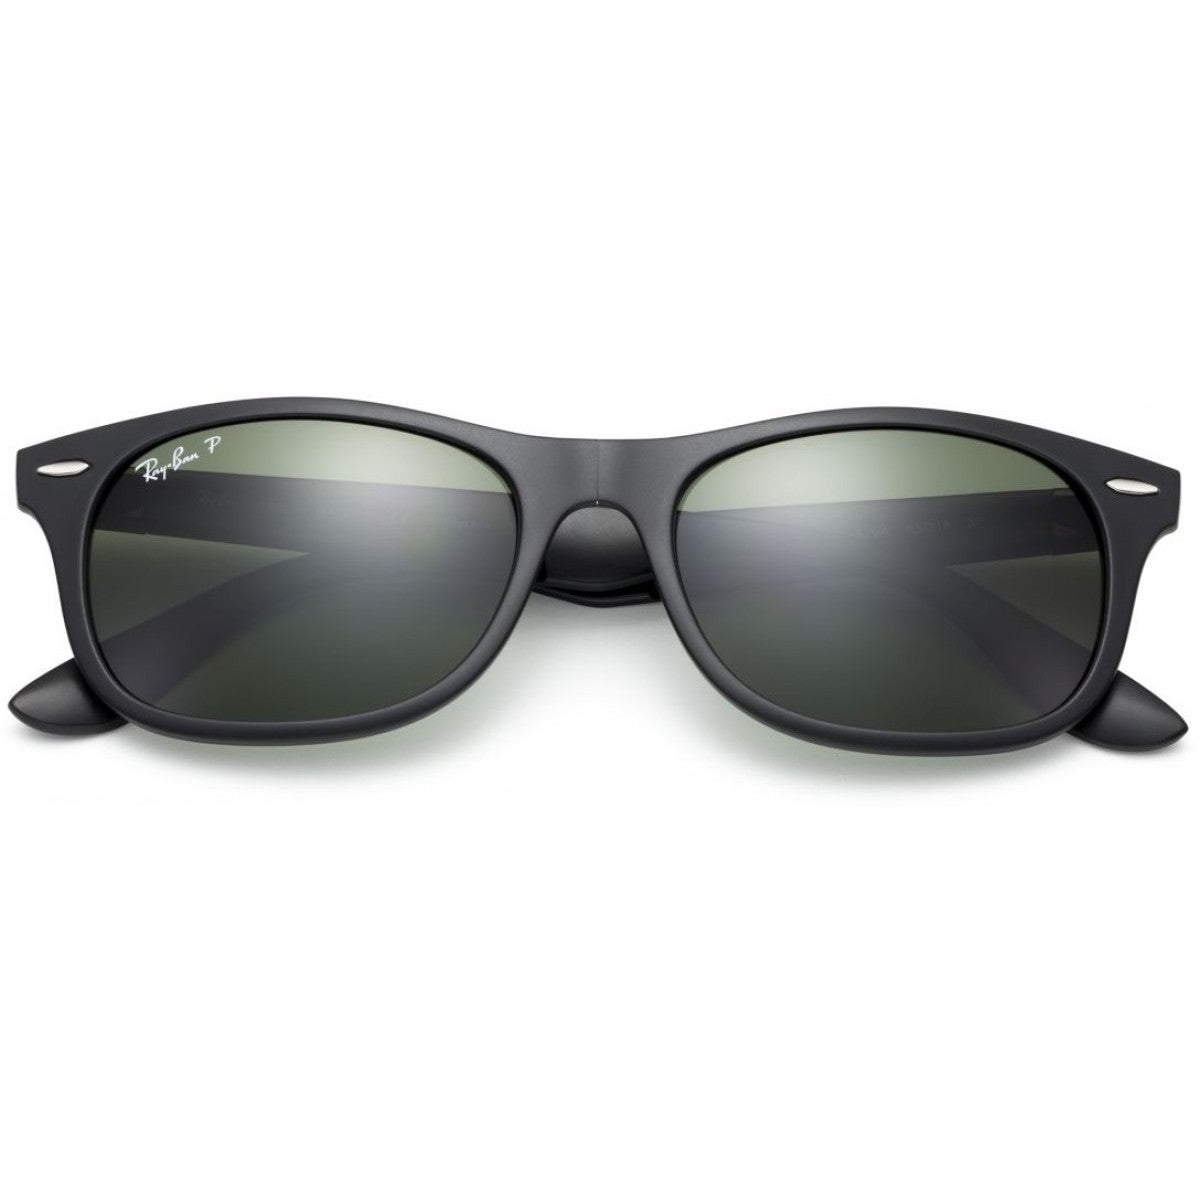 b9a1d40898623 Shop Ray-Ban RB4223 601S9A 55mm Polarized Green Classic Lenses Black Frame Foldable  Sunglasses - Free Shipping Today - Overstock - 11736672